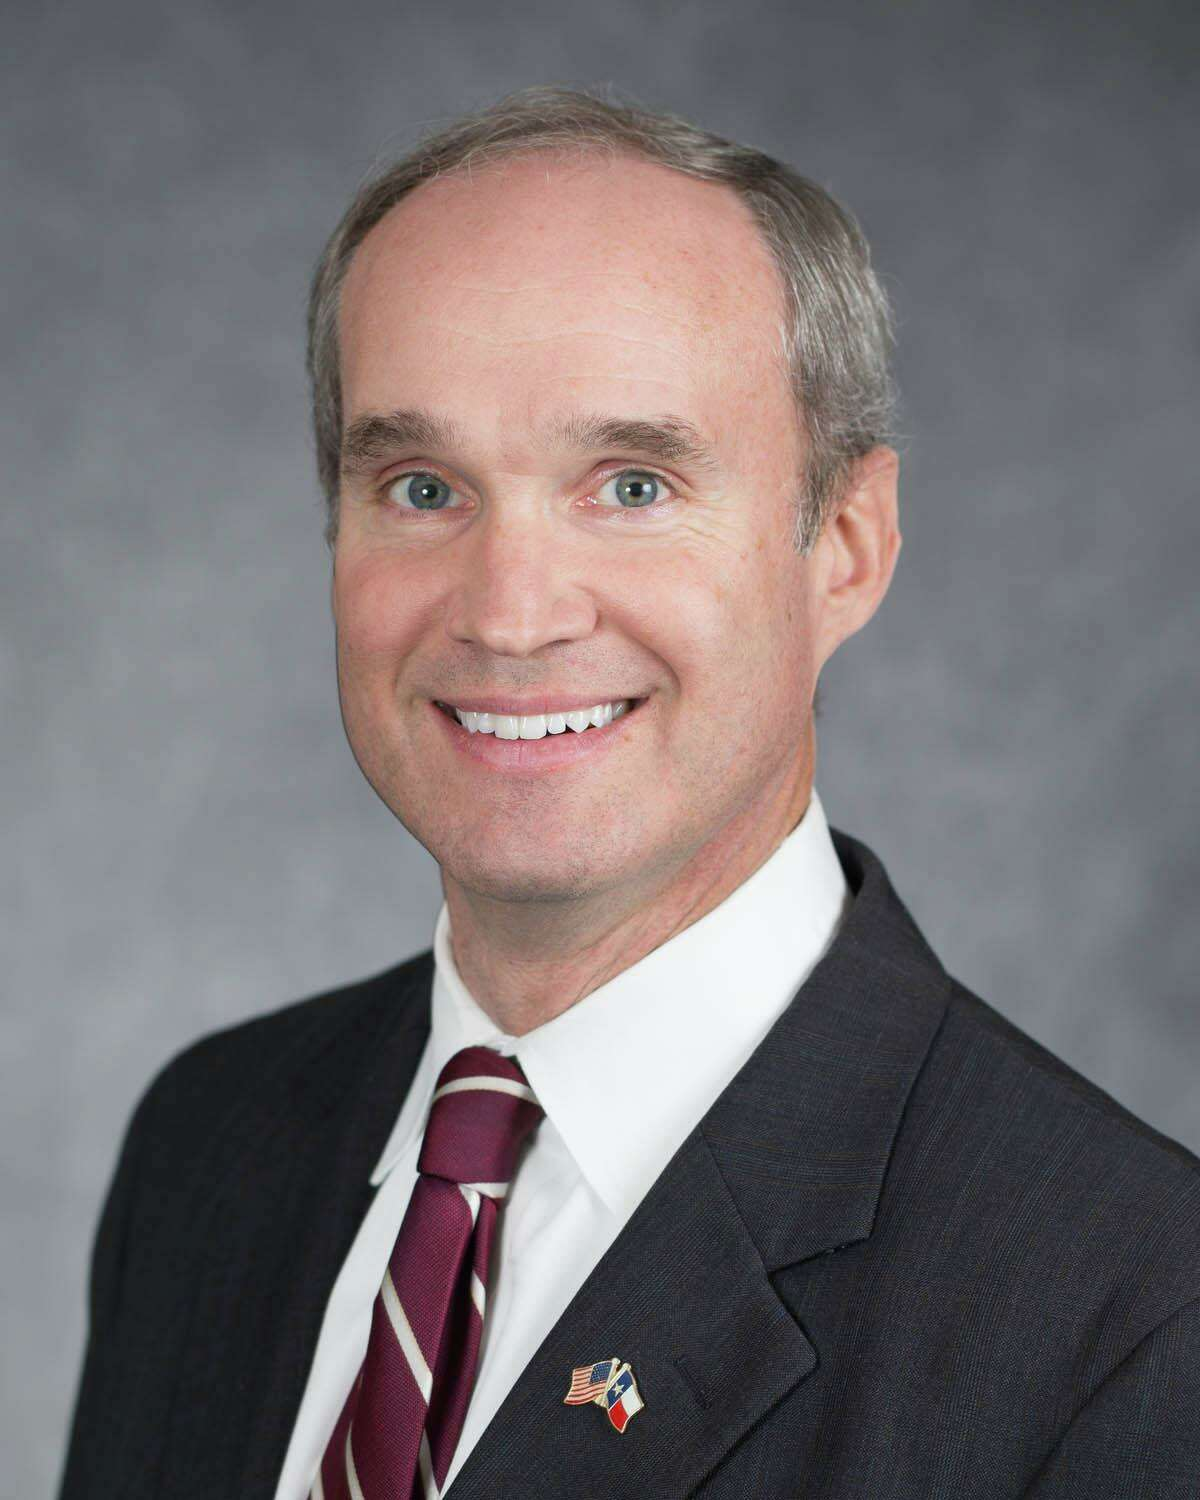 State Rep. Mike Schofield represents District 132 in the Texas Legislature, which includes the Katy area.